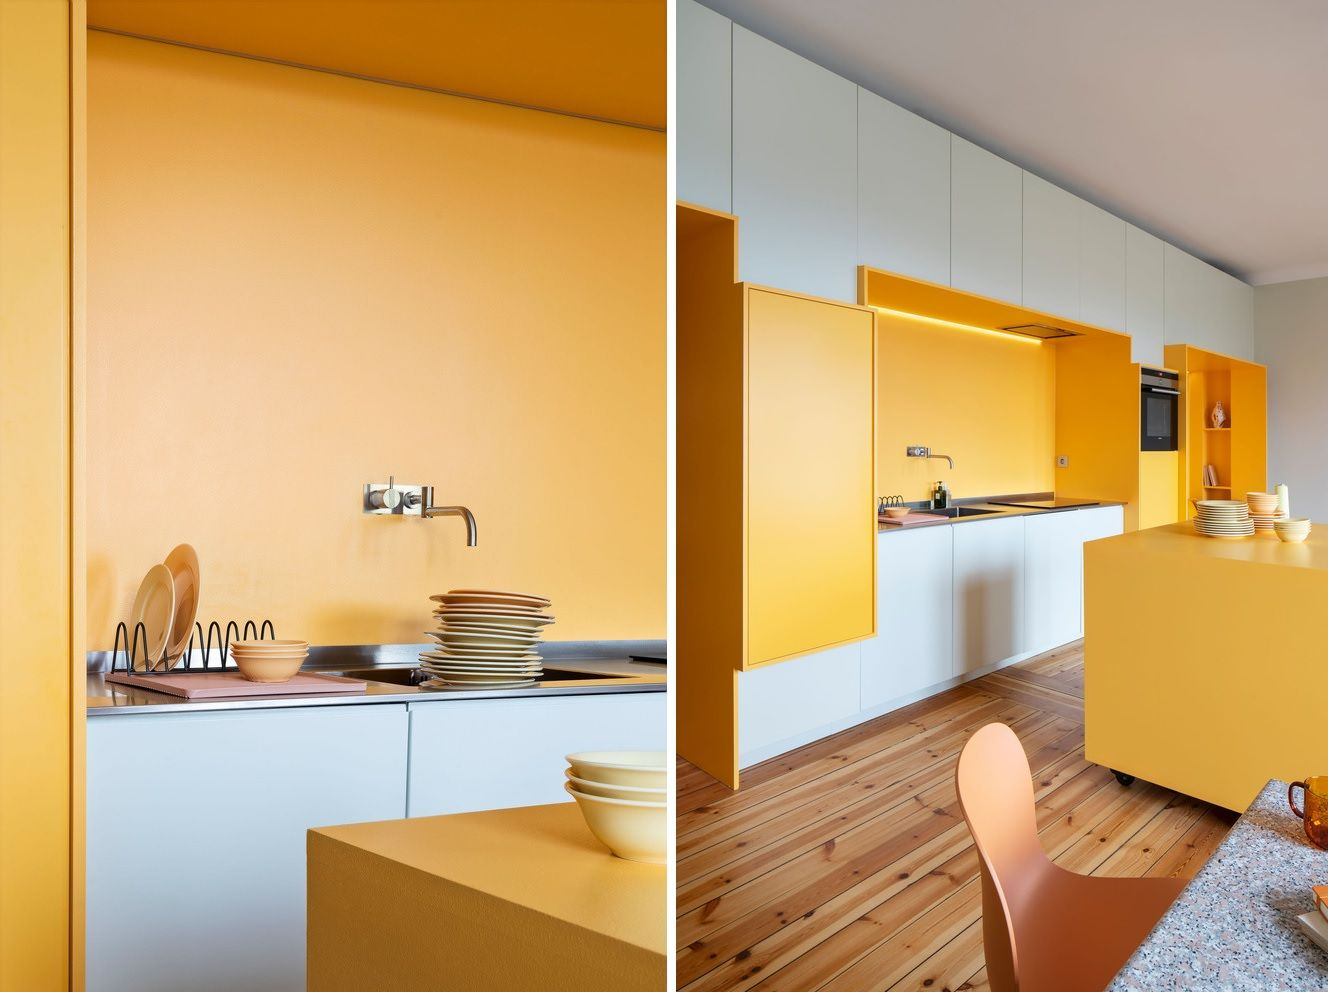 Colors in addition to having a cheerful and welcoming vibe the apartment is also very bright